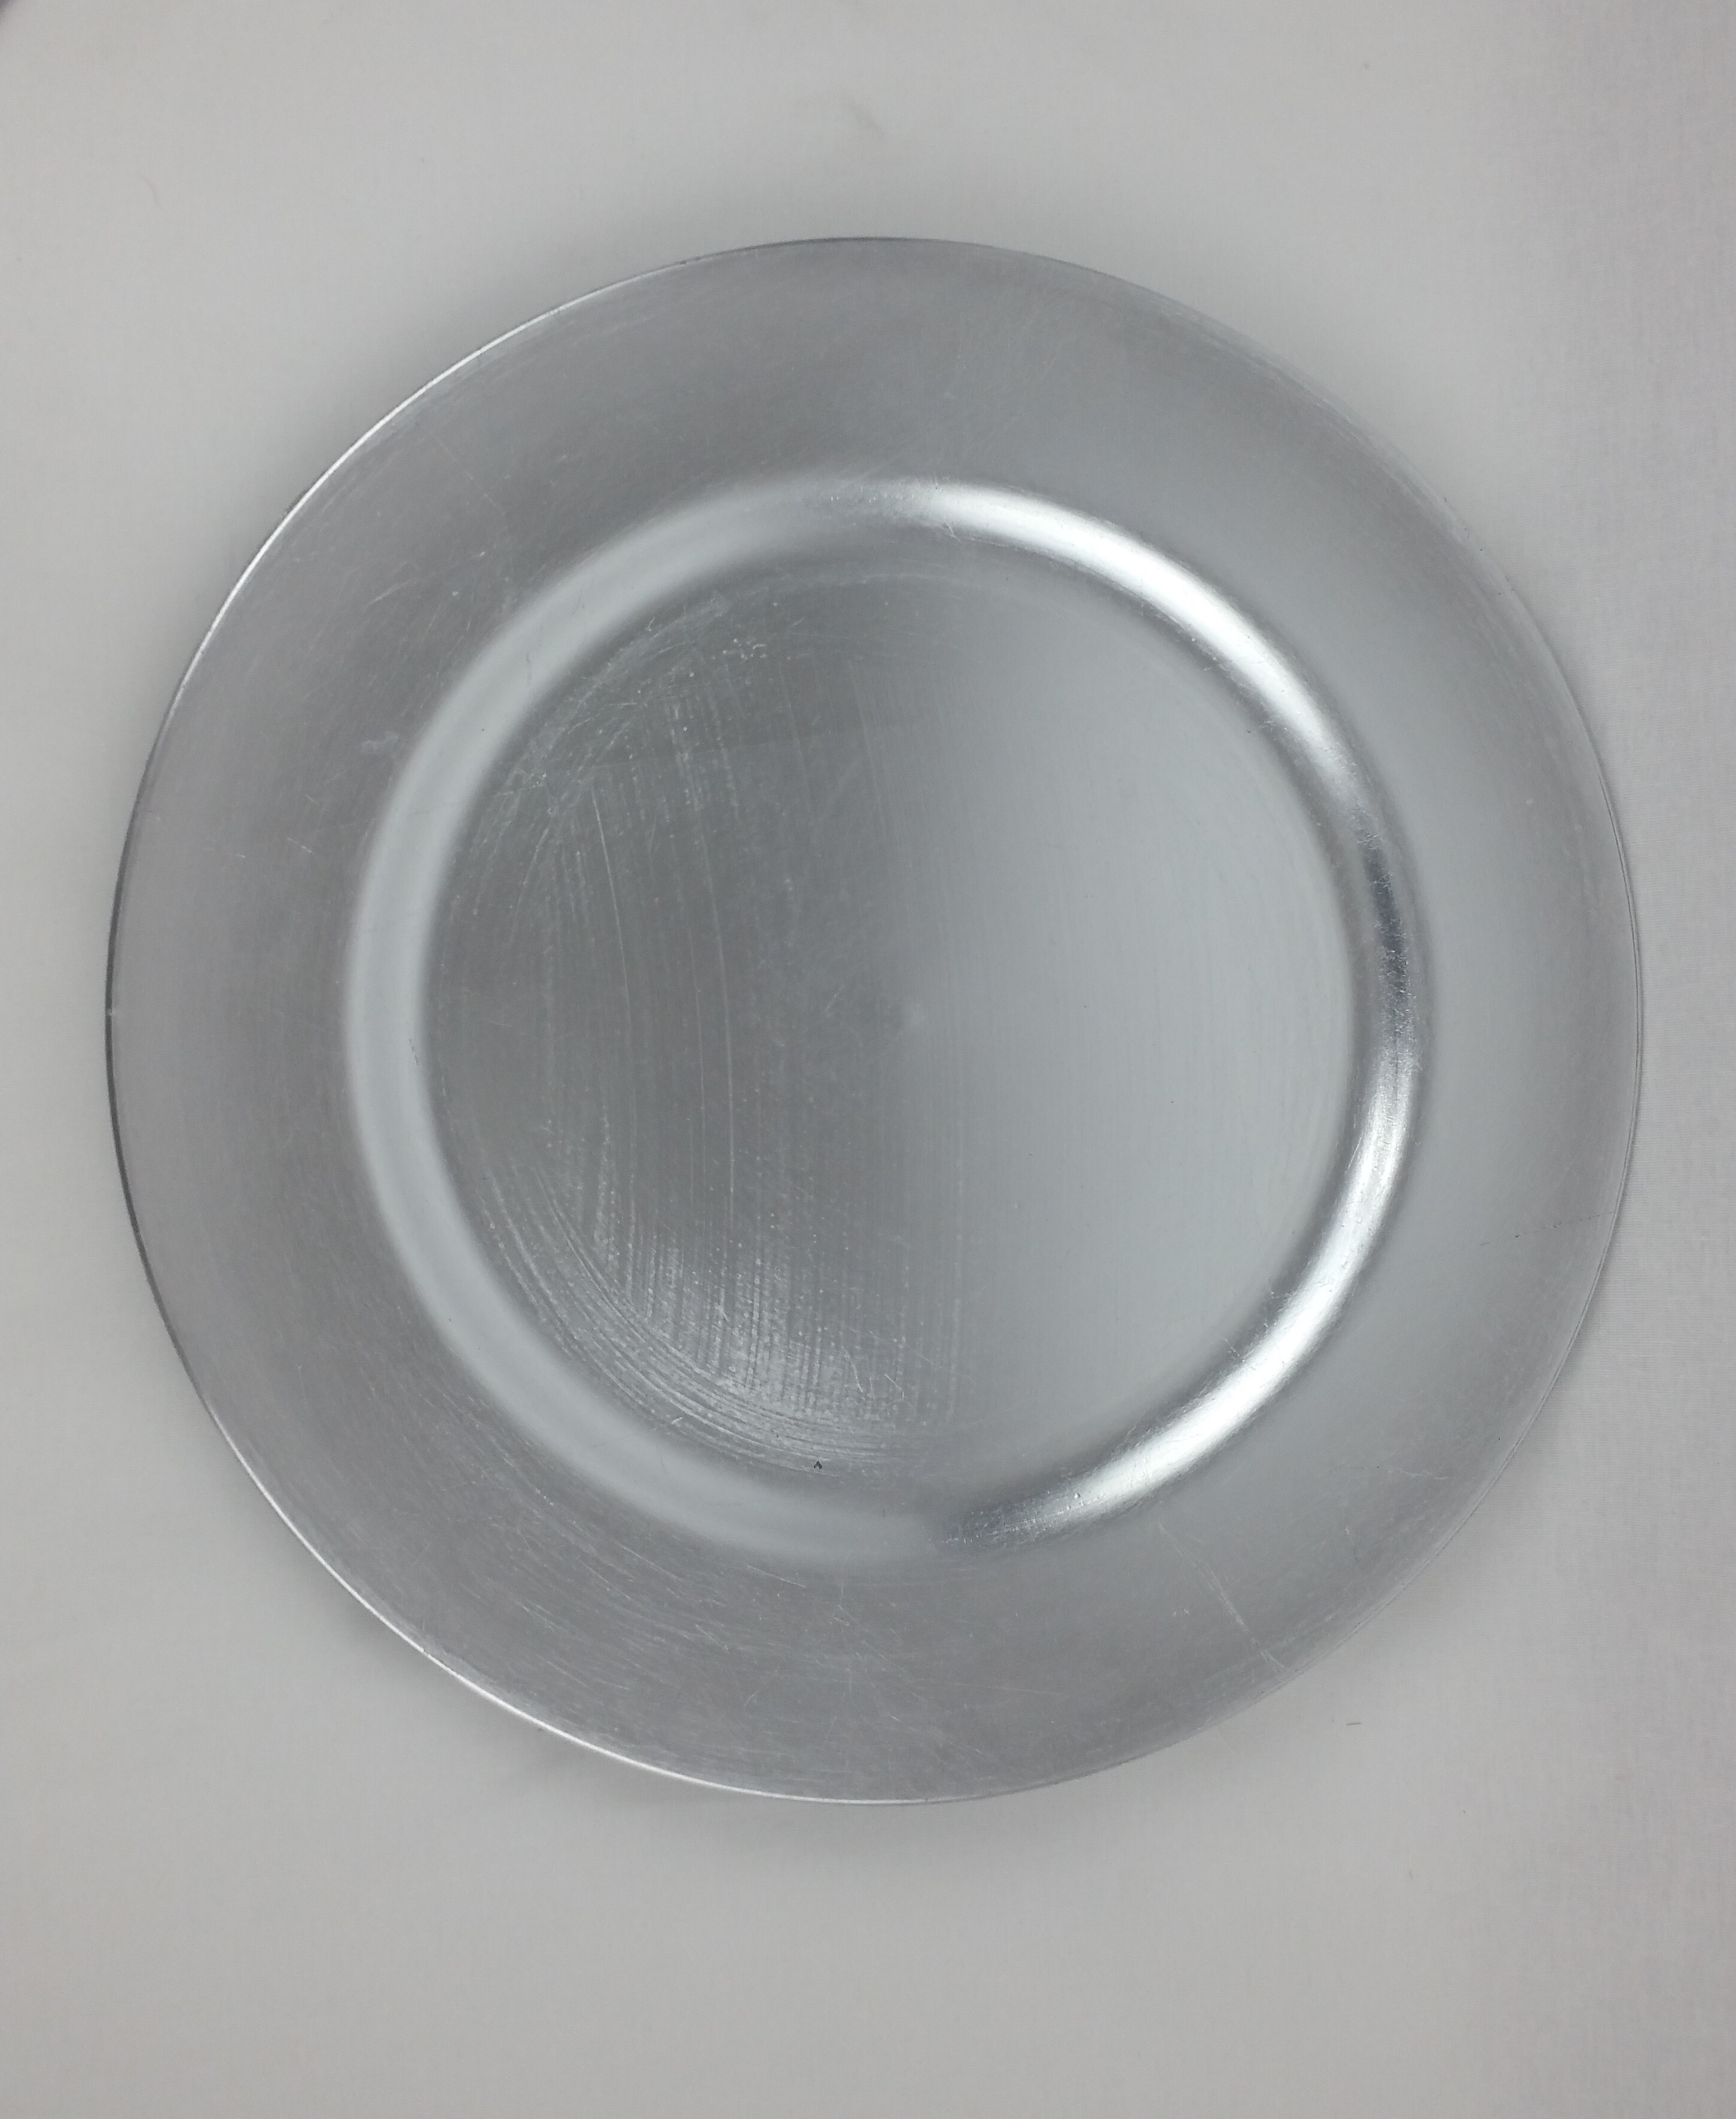 Silver charger plate (plastic). From £0.75p each.